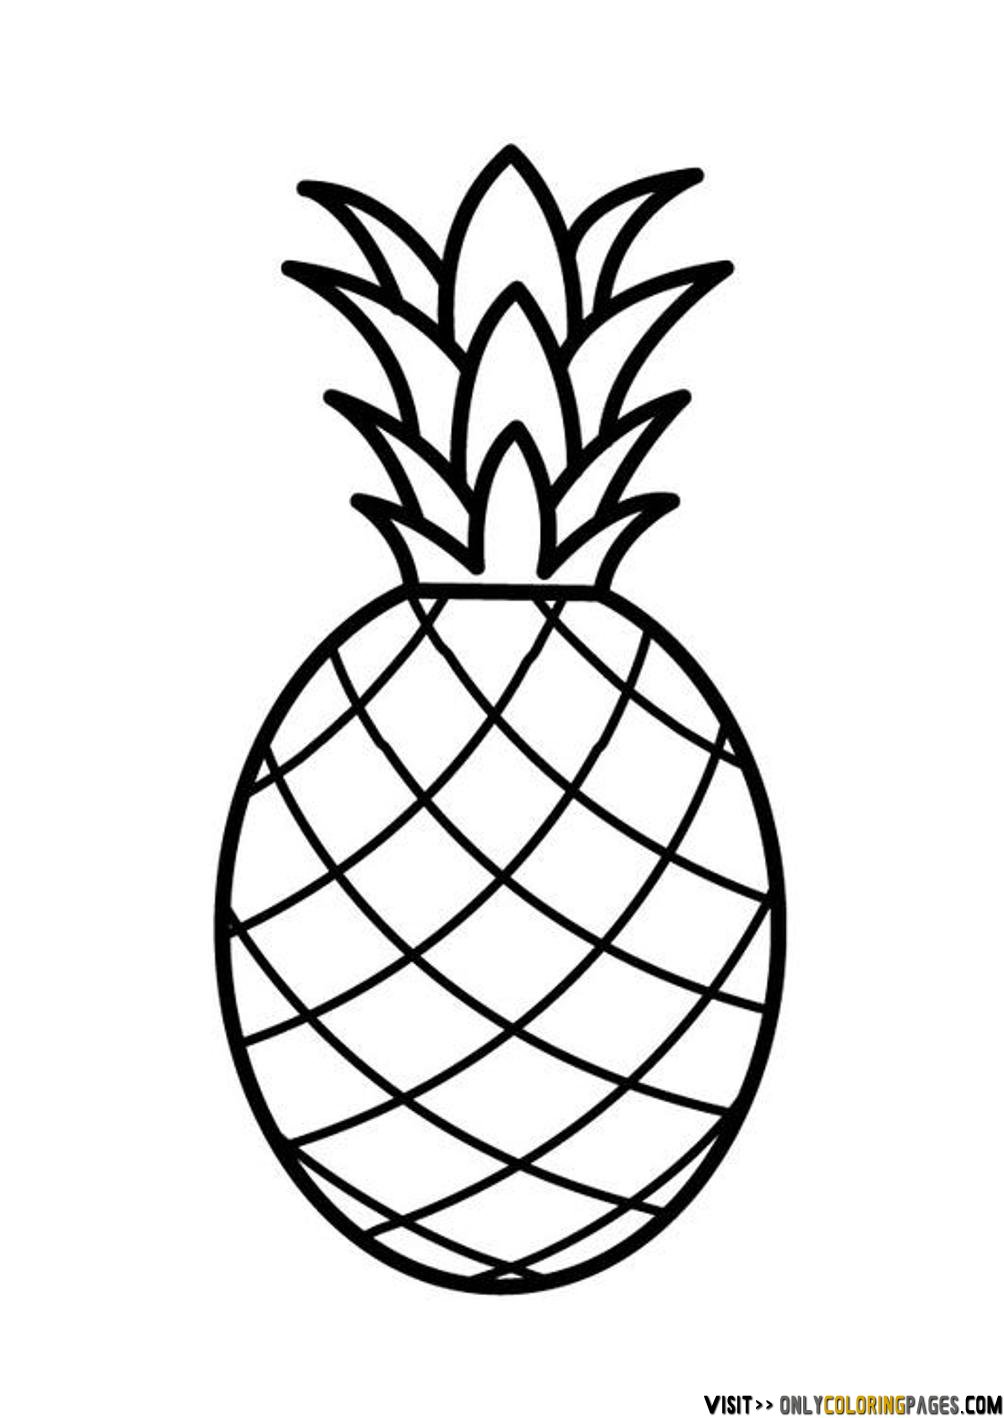 Outline Black And White Image Of A Pineapple Royalty Free Cliparts.